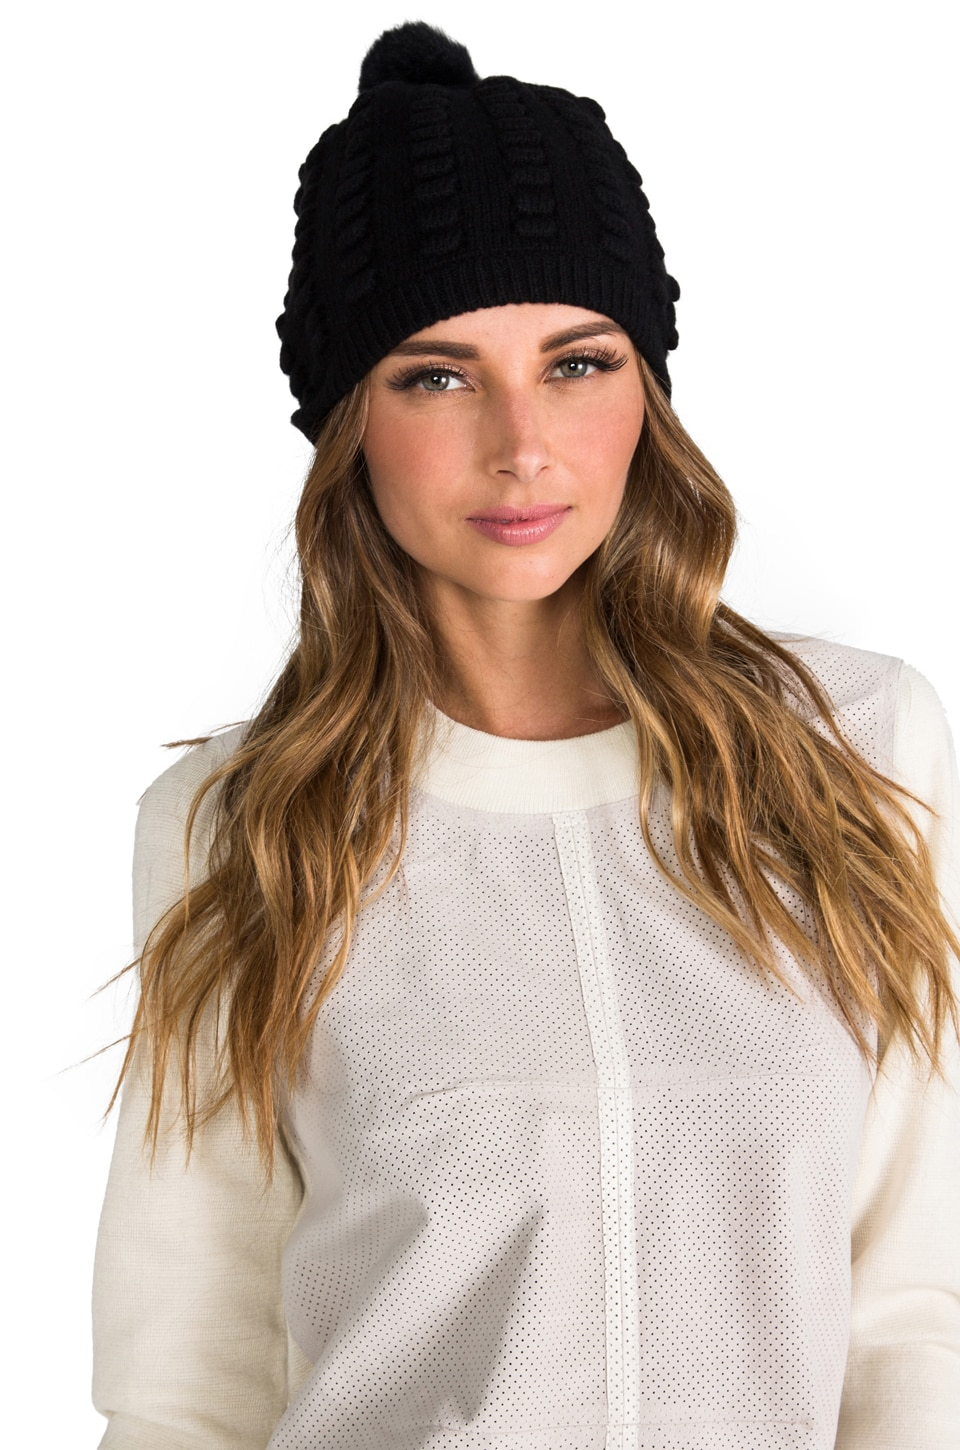 Diane von Furstenberg Dena Knit Hat with Rabbit Fur in Black